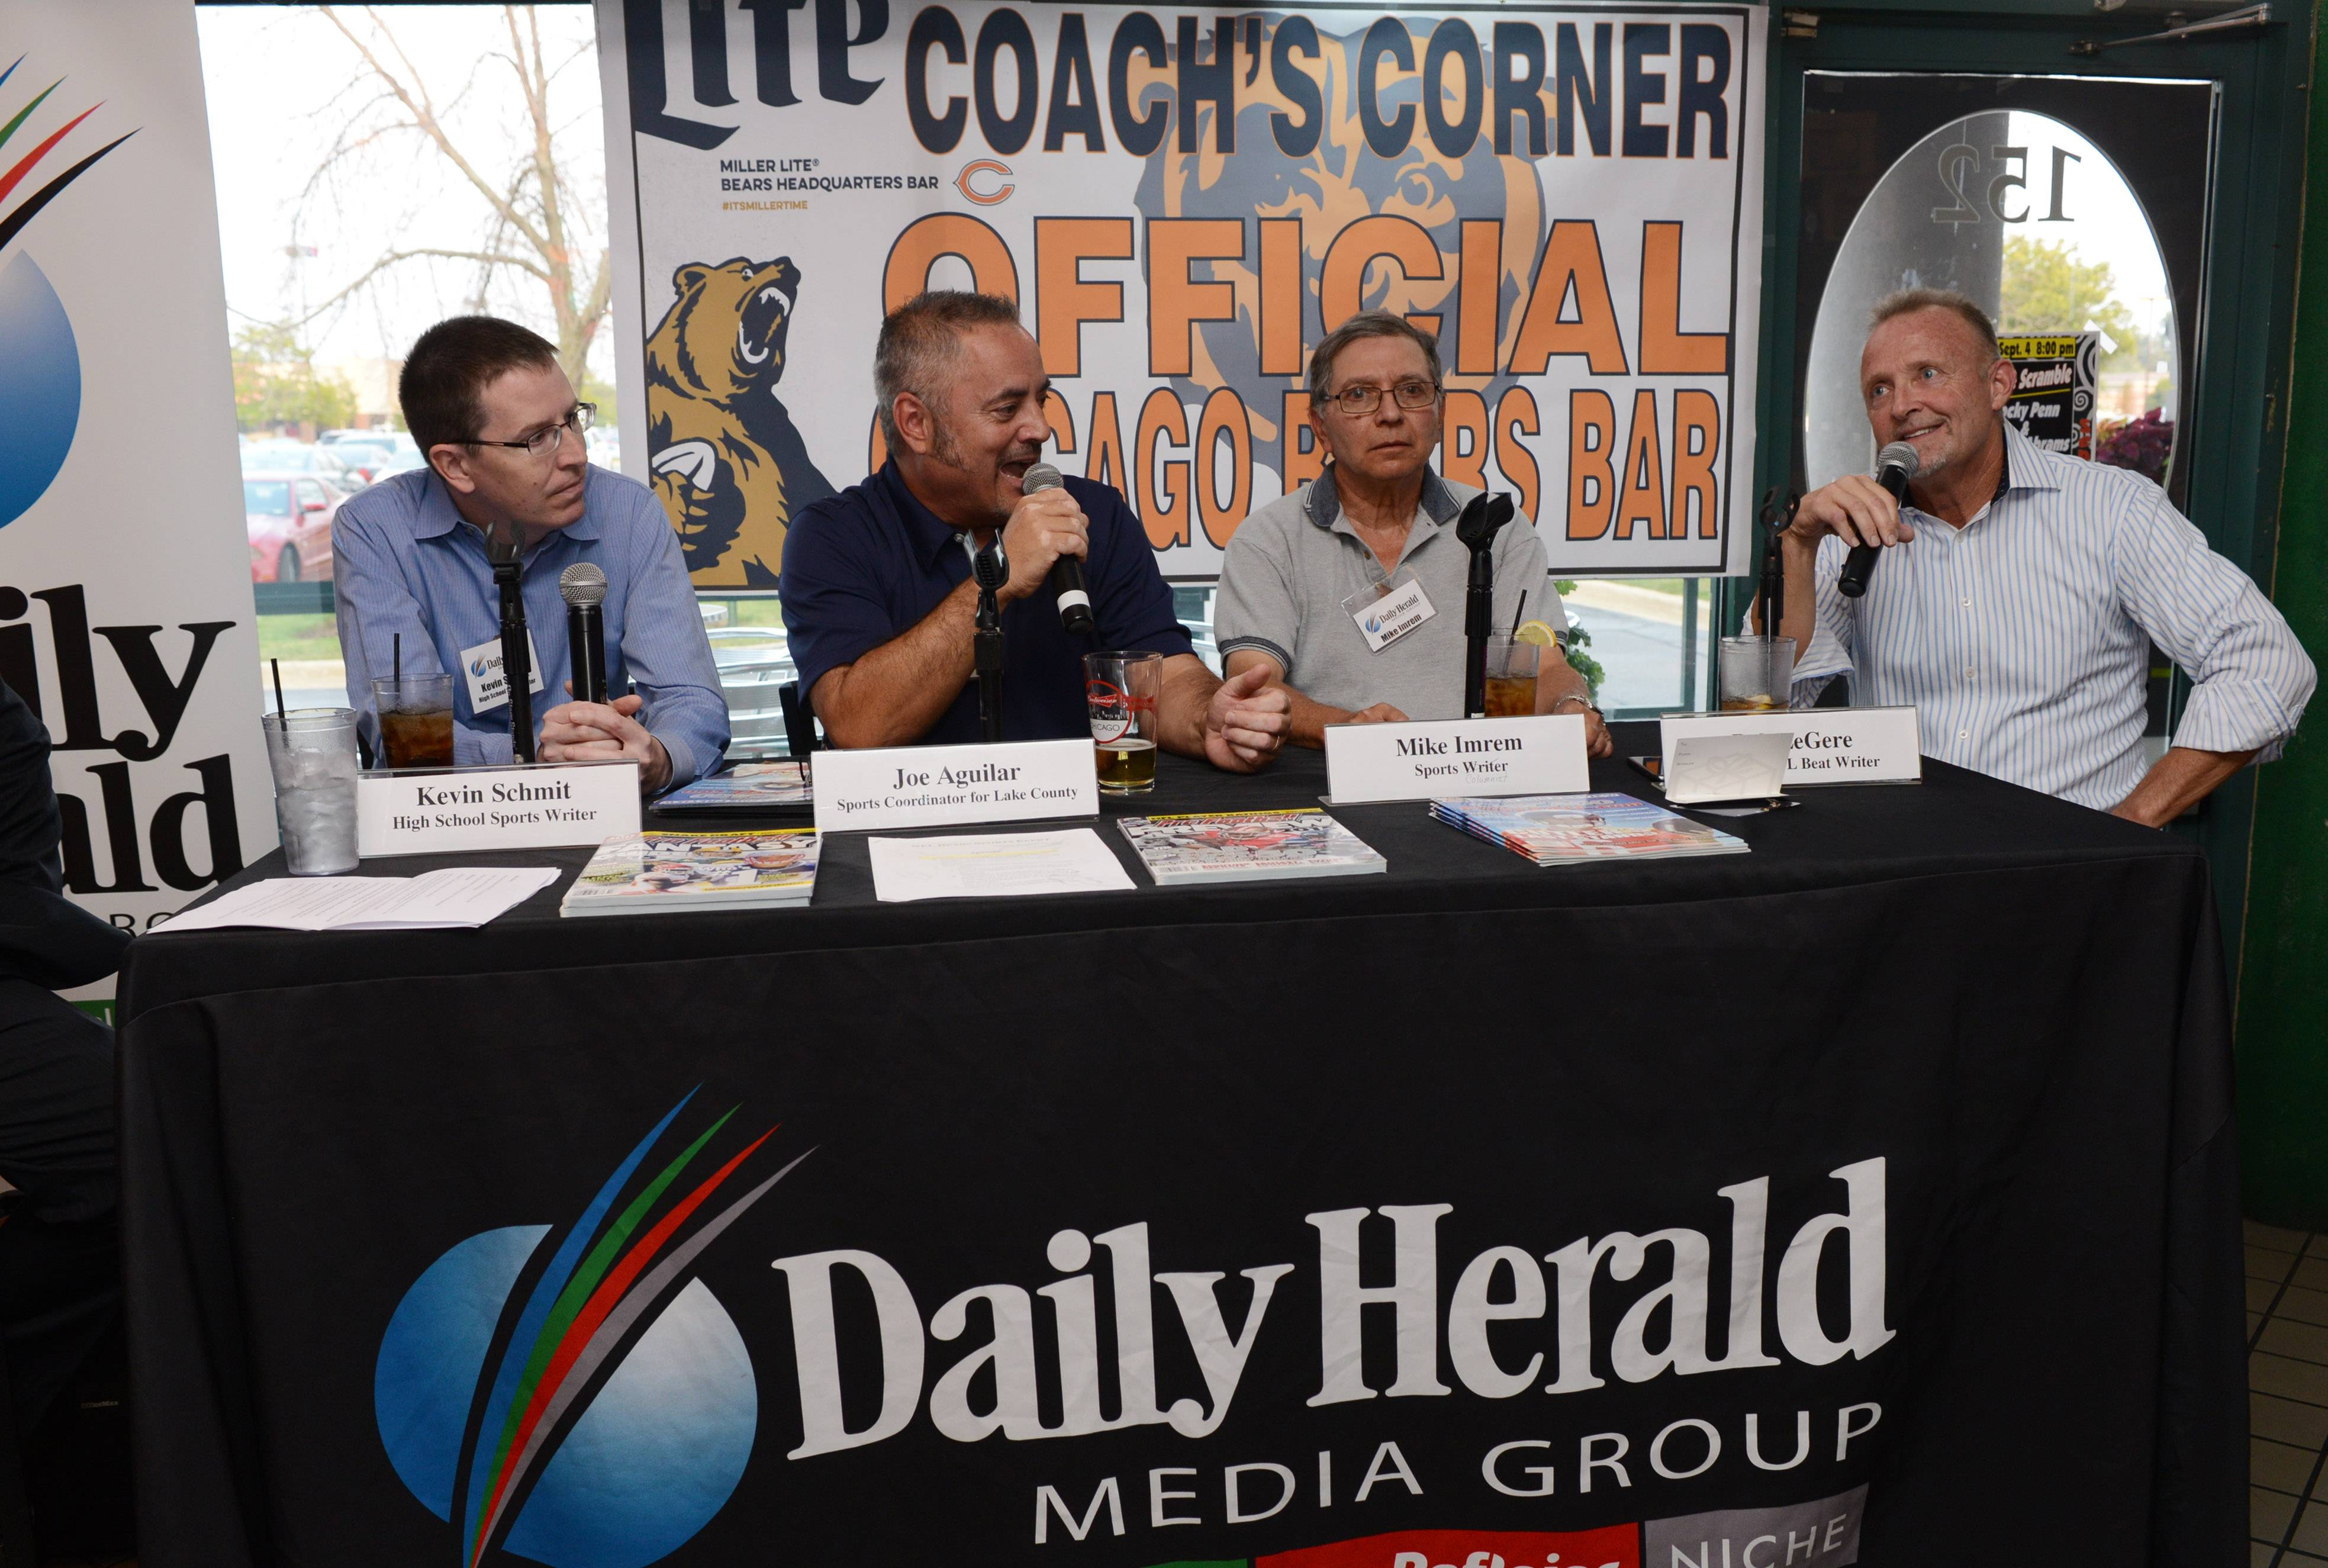 Daily Herald football chat scores at Coach's Corner